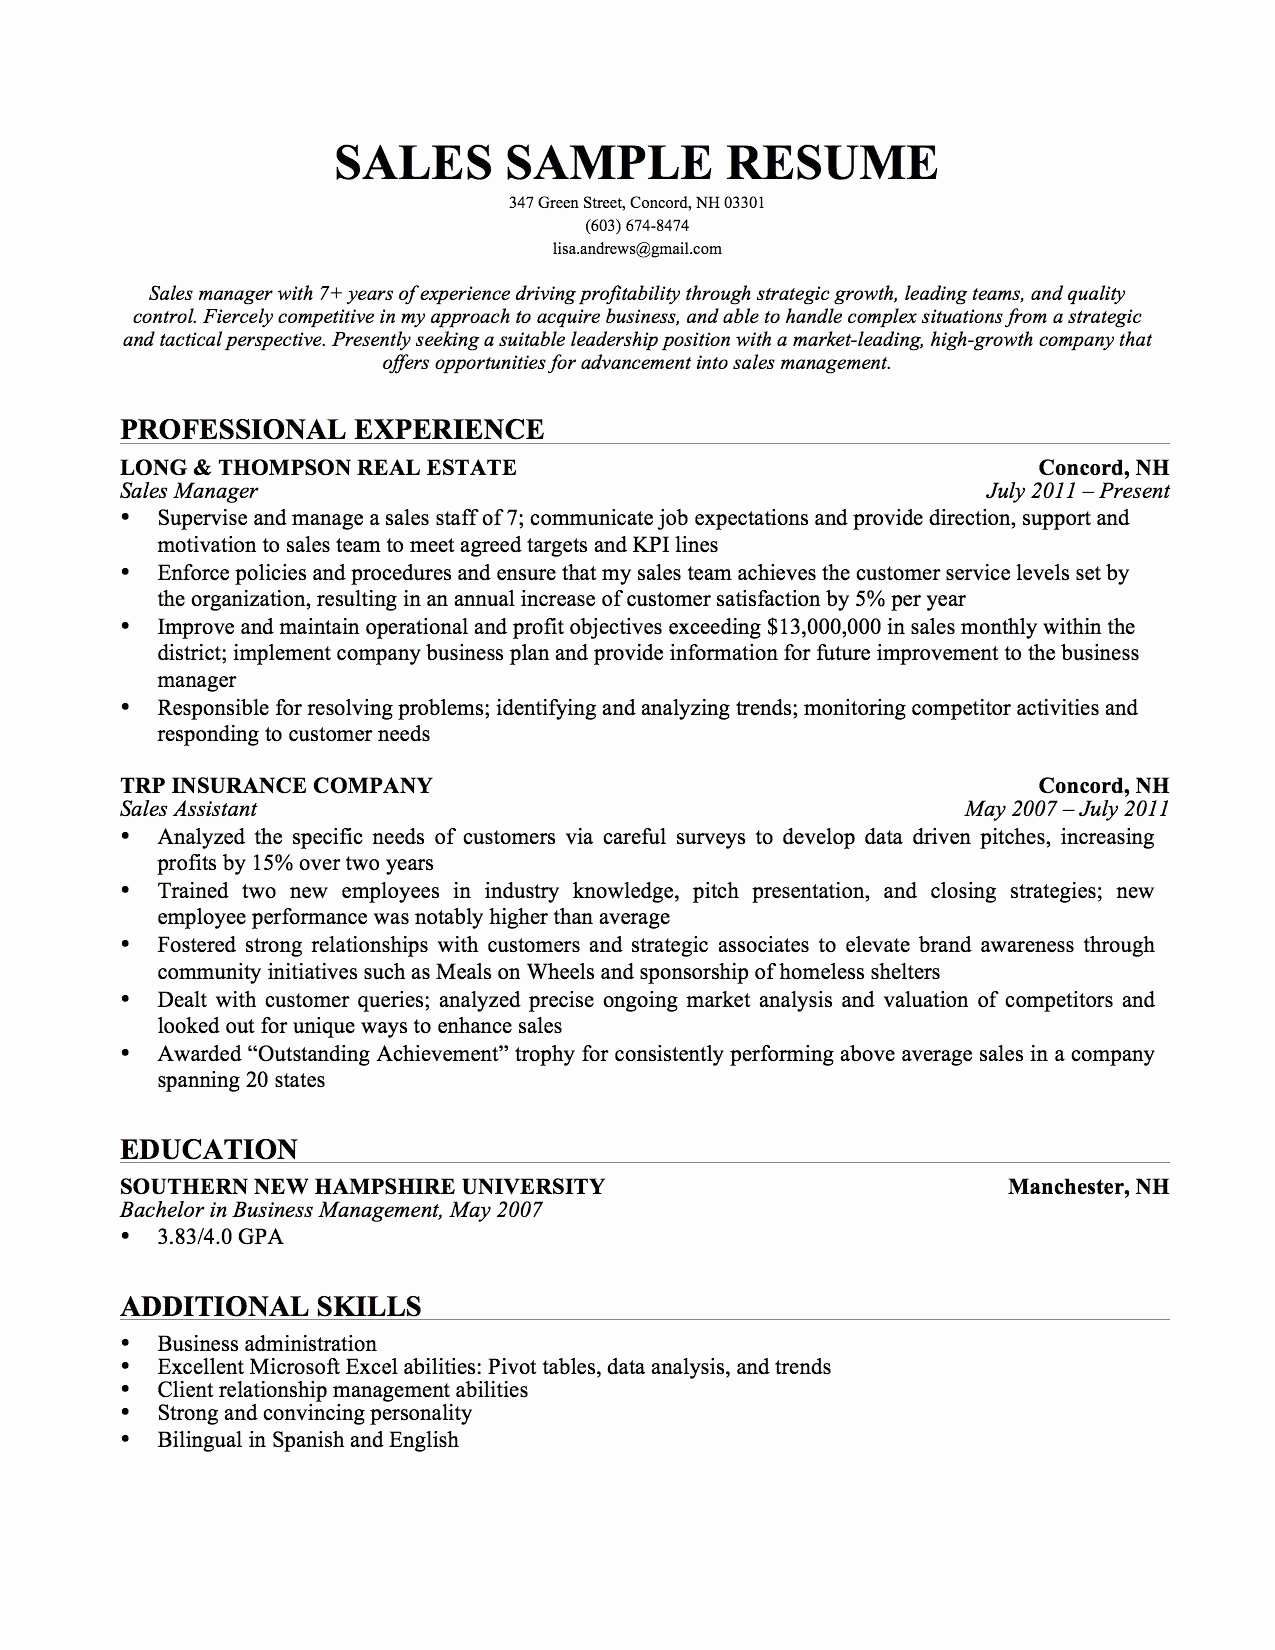 Recent Graduate Resume - College Graduate Resume Examples Best Type A Resume Beautiful